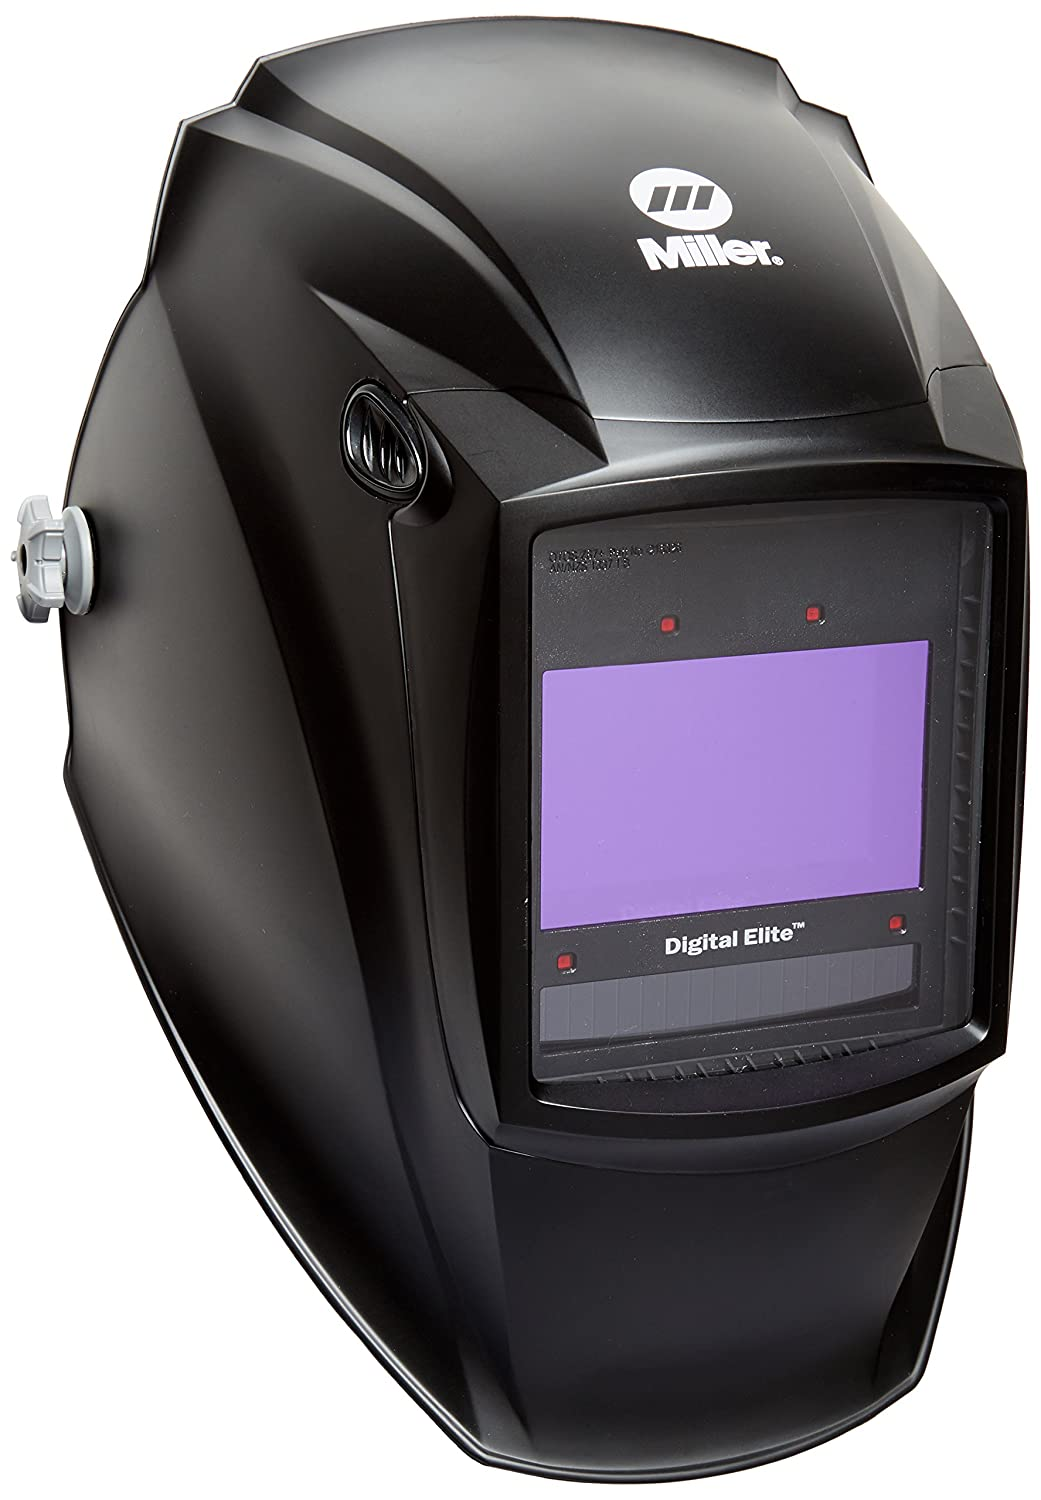 Auto Darkening Welding Helmet Black Digital Elite 3 5 To 8 8 To 13 Lens Shade Amazon In Industrial Scientific